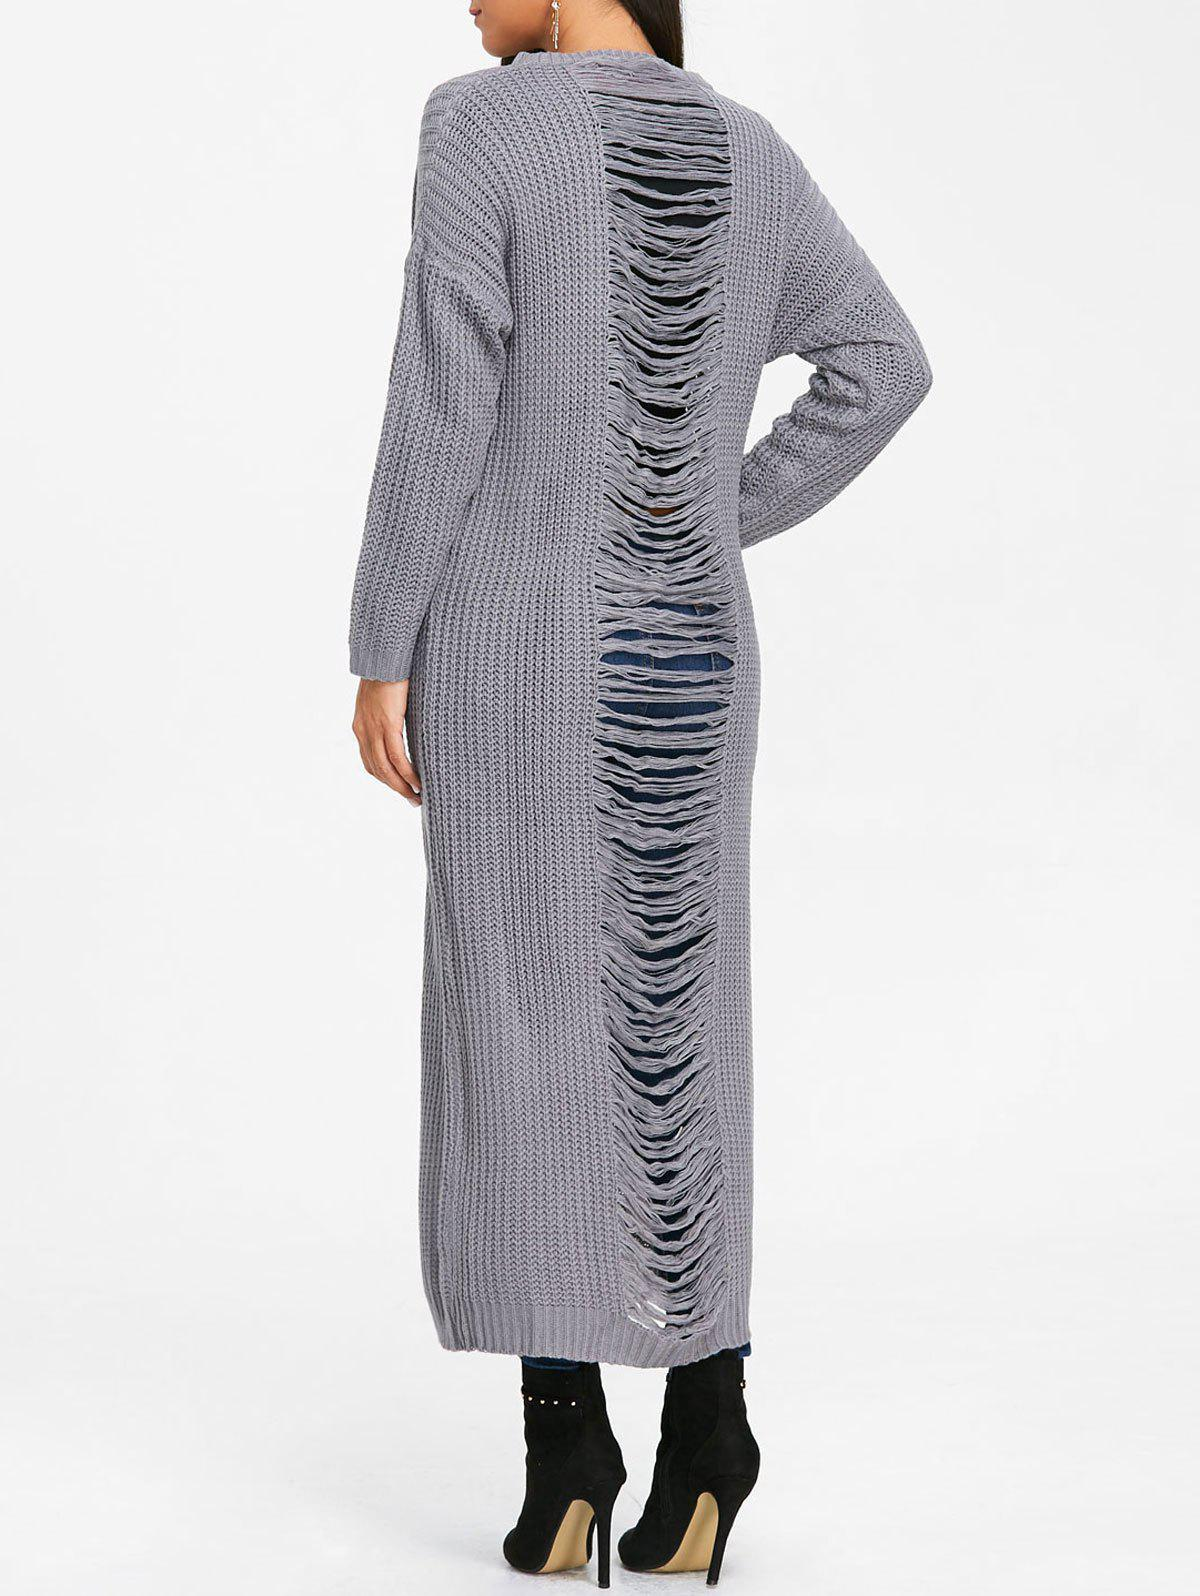 Ripped Chunky Knit Long Dress - GRAY S